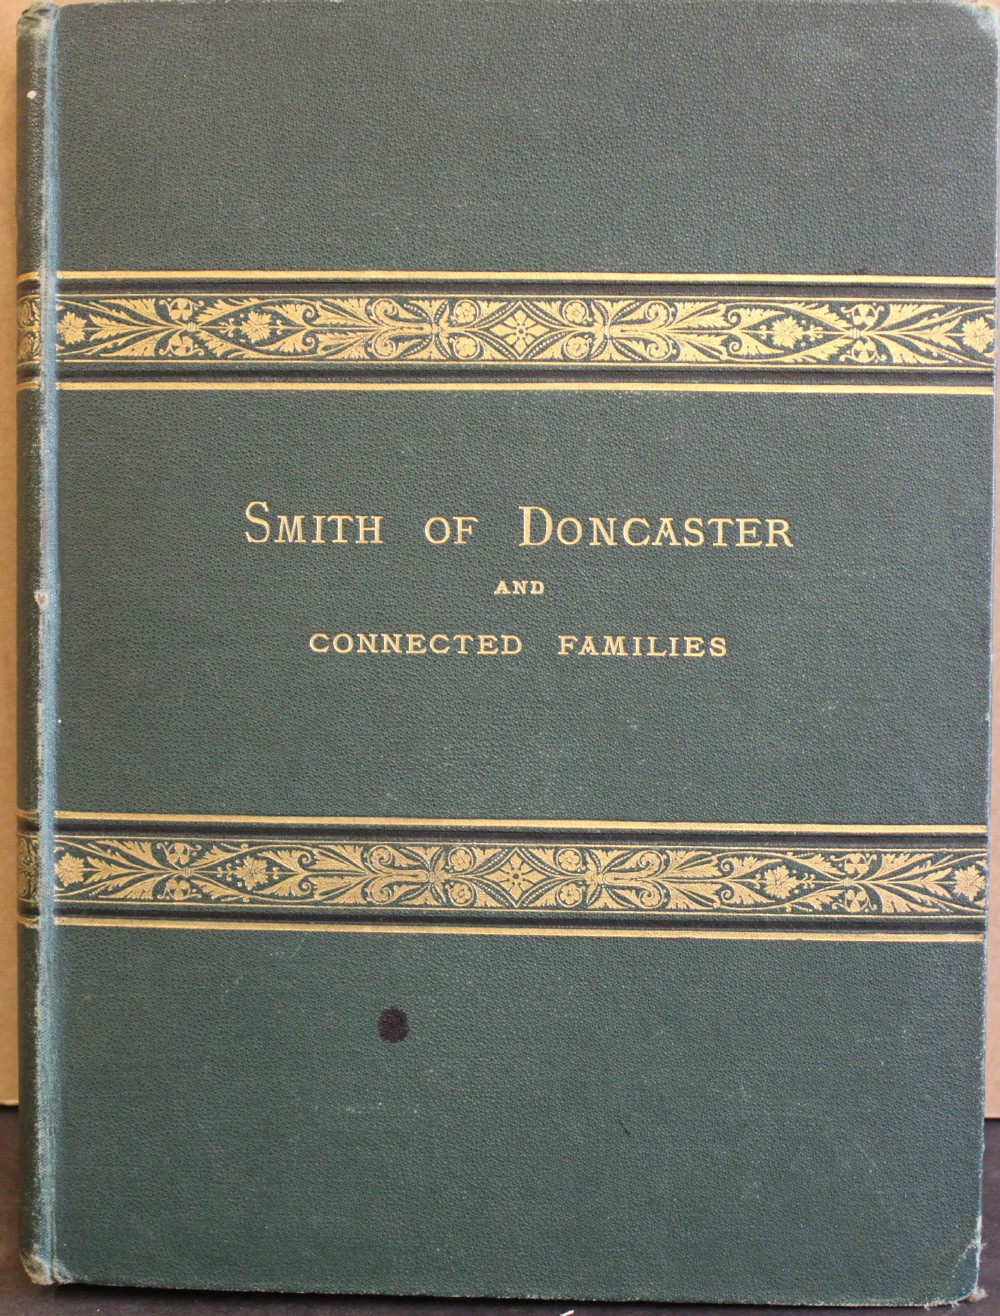 Image for Annals of Smith of Cantley, Balby, and Doncaster, County York; Embracing Elaborate Pedigrees of the Connected Families and Biographical Notices of Their More Eminent Members.